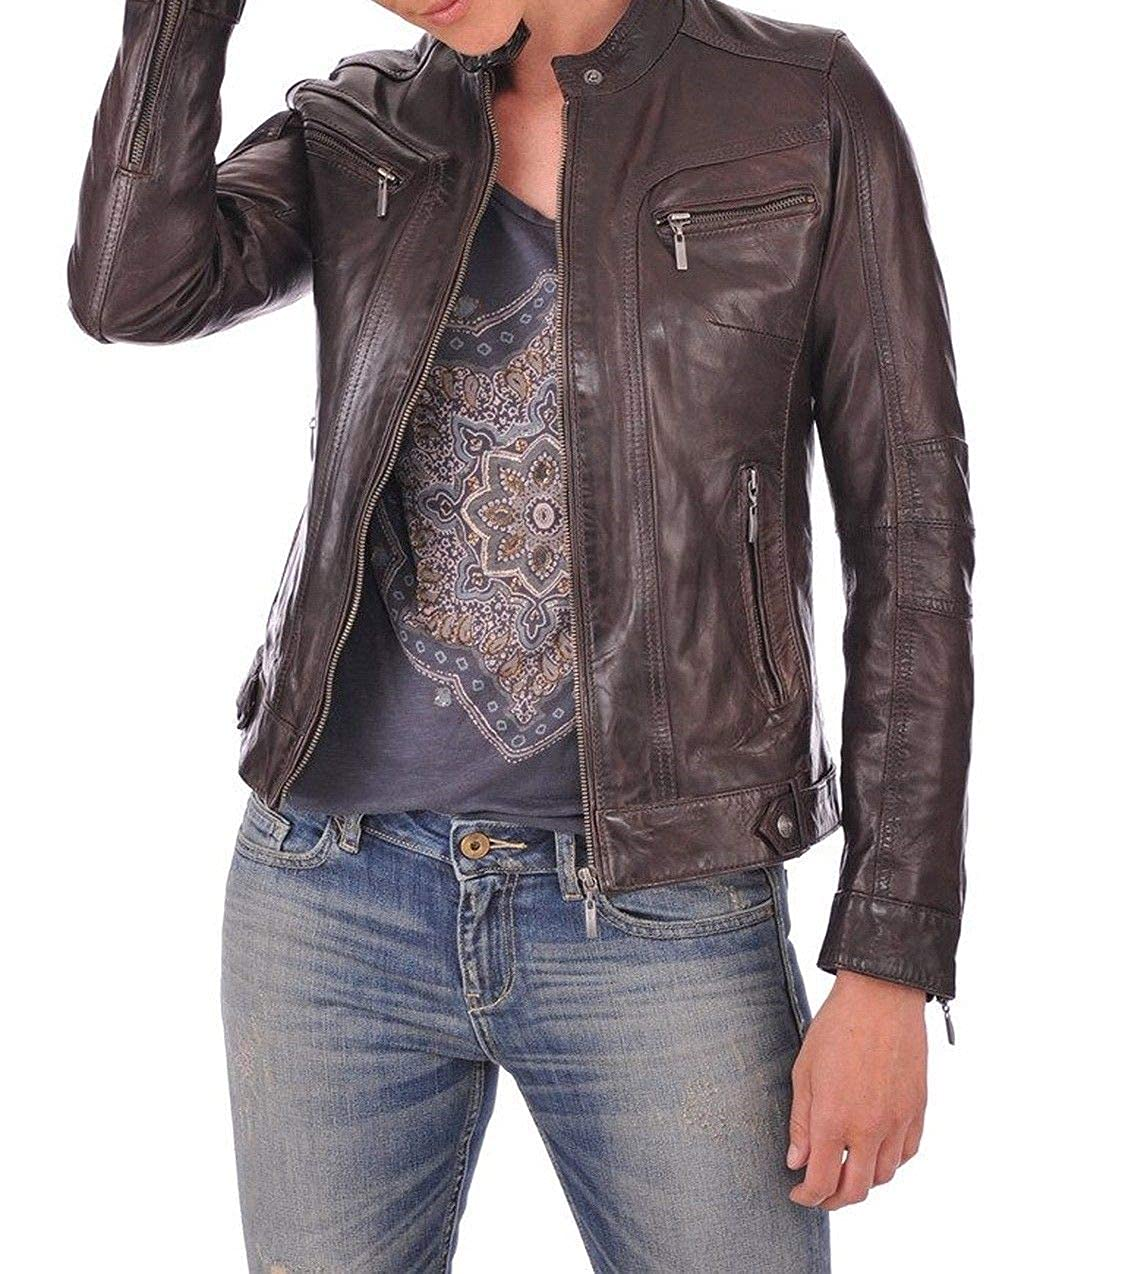 Brown102rc DOLLY LAMB 100% Leather Jacket for Women  Round Collar, Slim Fit & Quilted  Moto, Bomber, Biker Winter Casual Wear